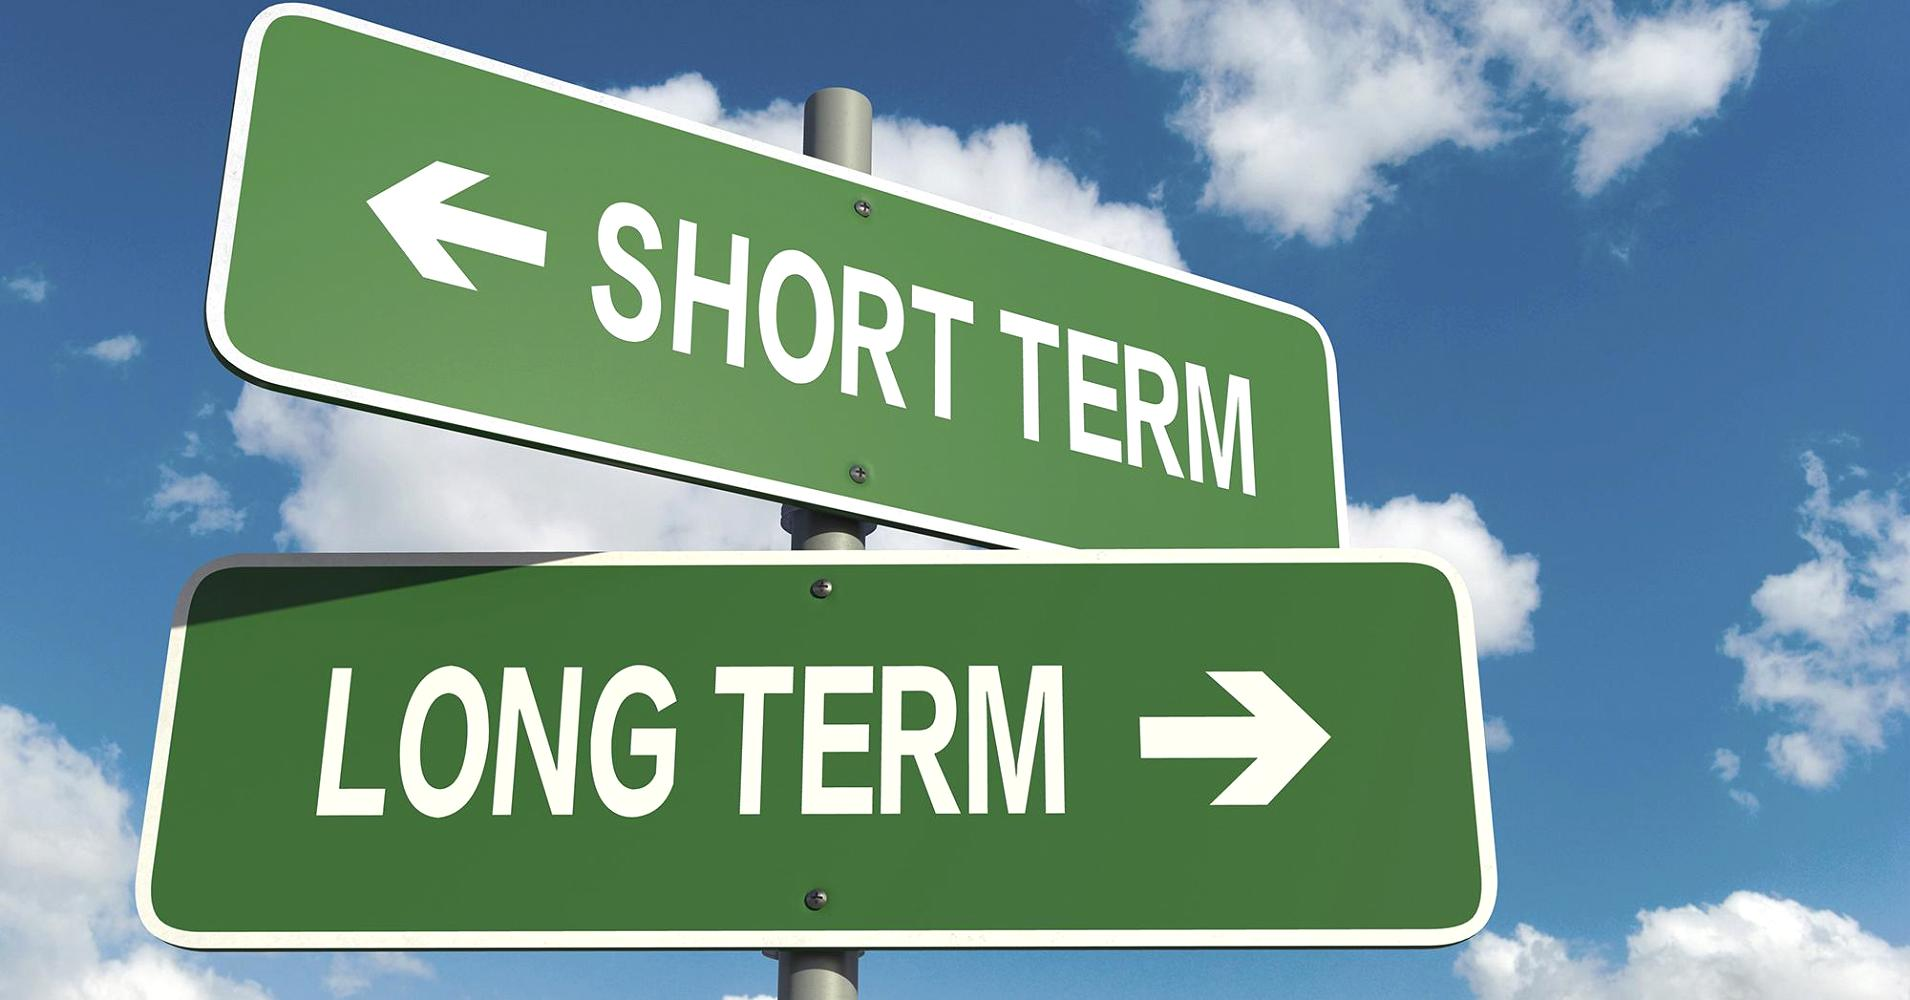 05-short-term-long-term